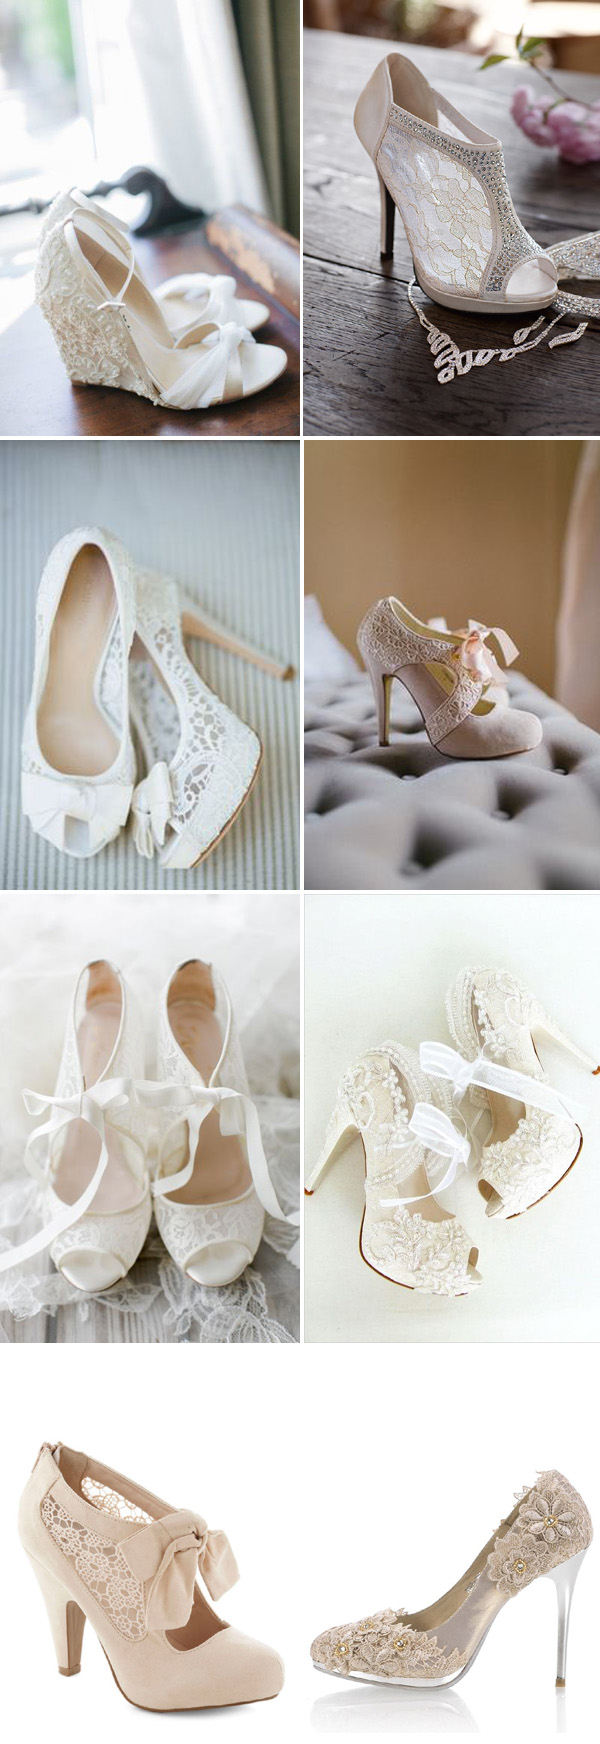 Wedding_Philippines_Most_Loved_Wedding_Shoes_for_Brides_lace-wedding-heels-and-shoes